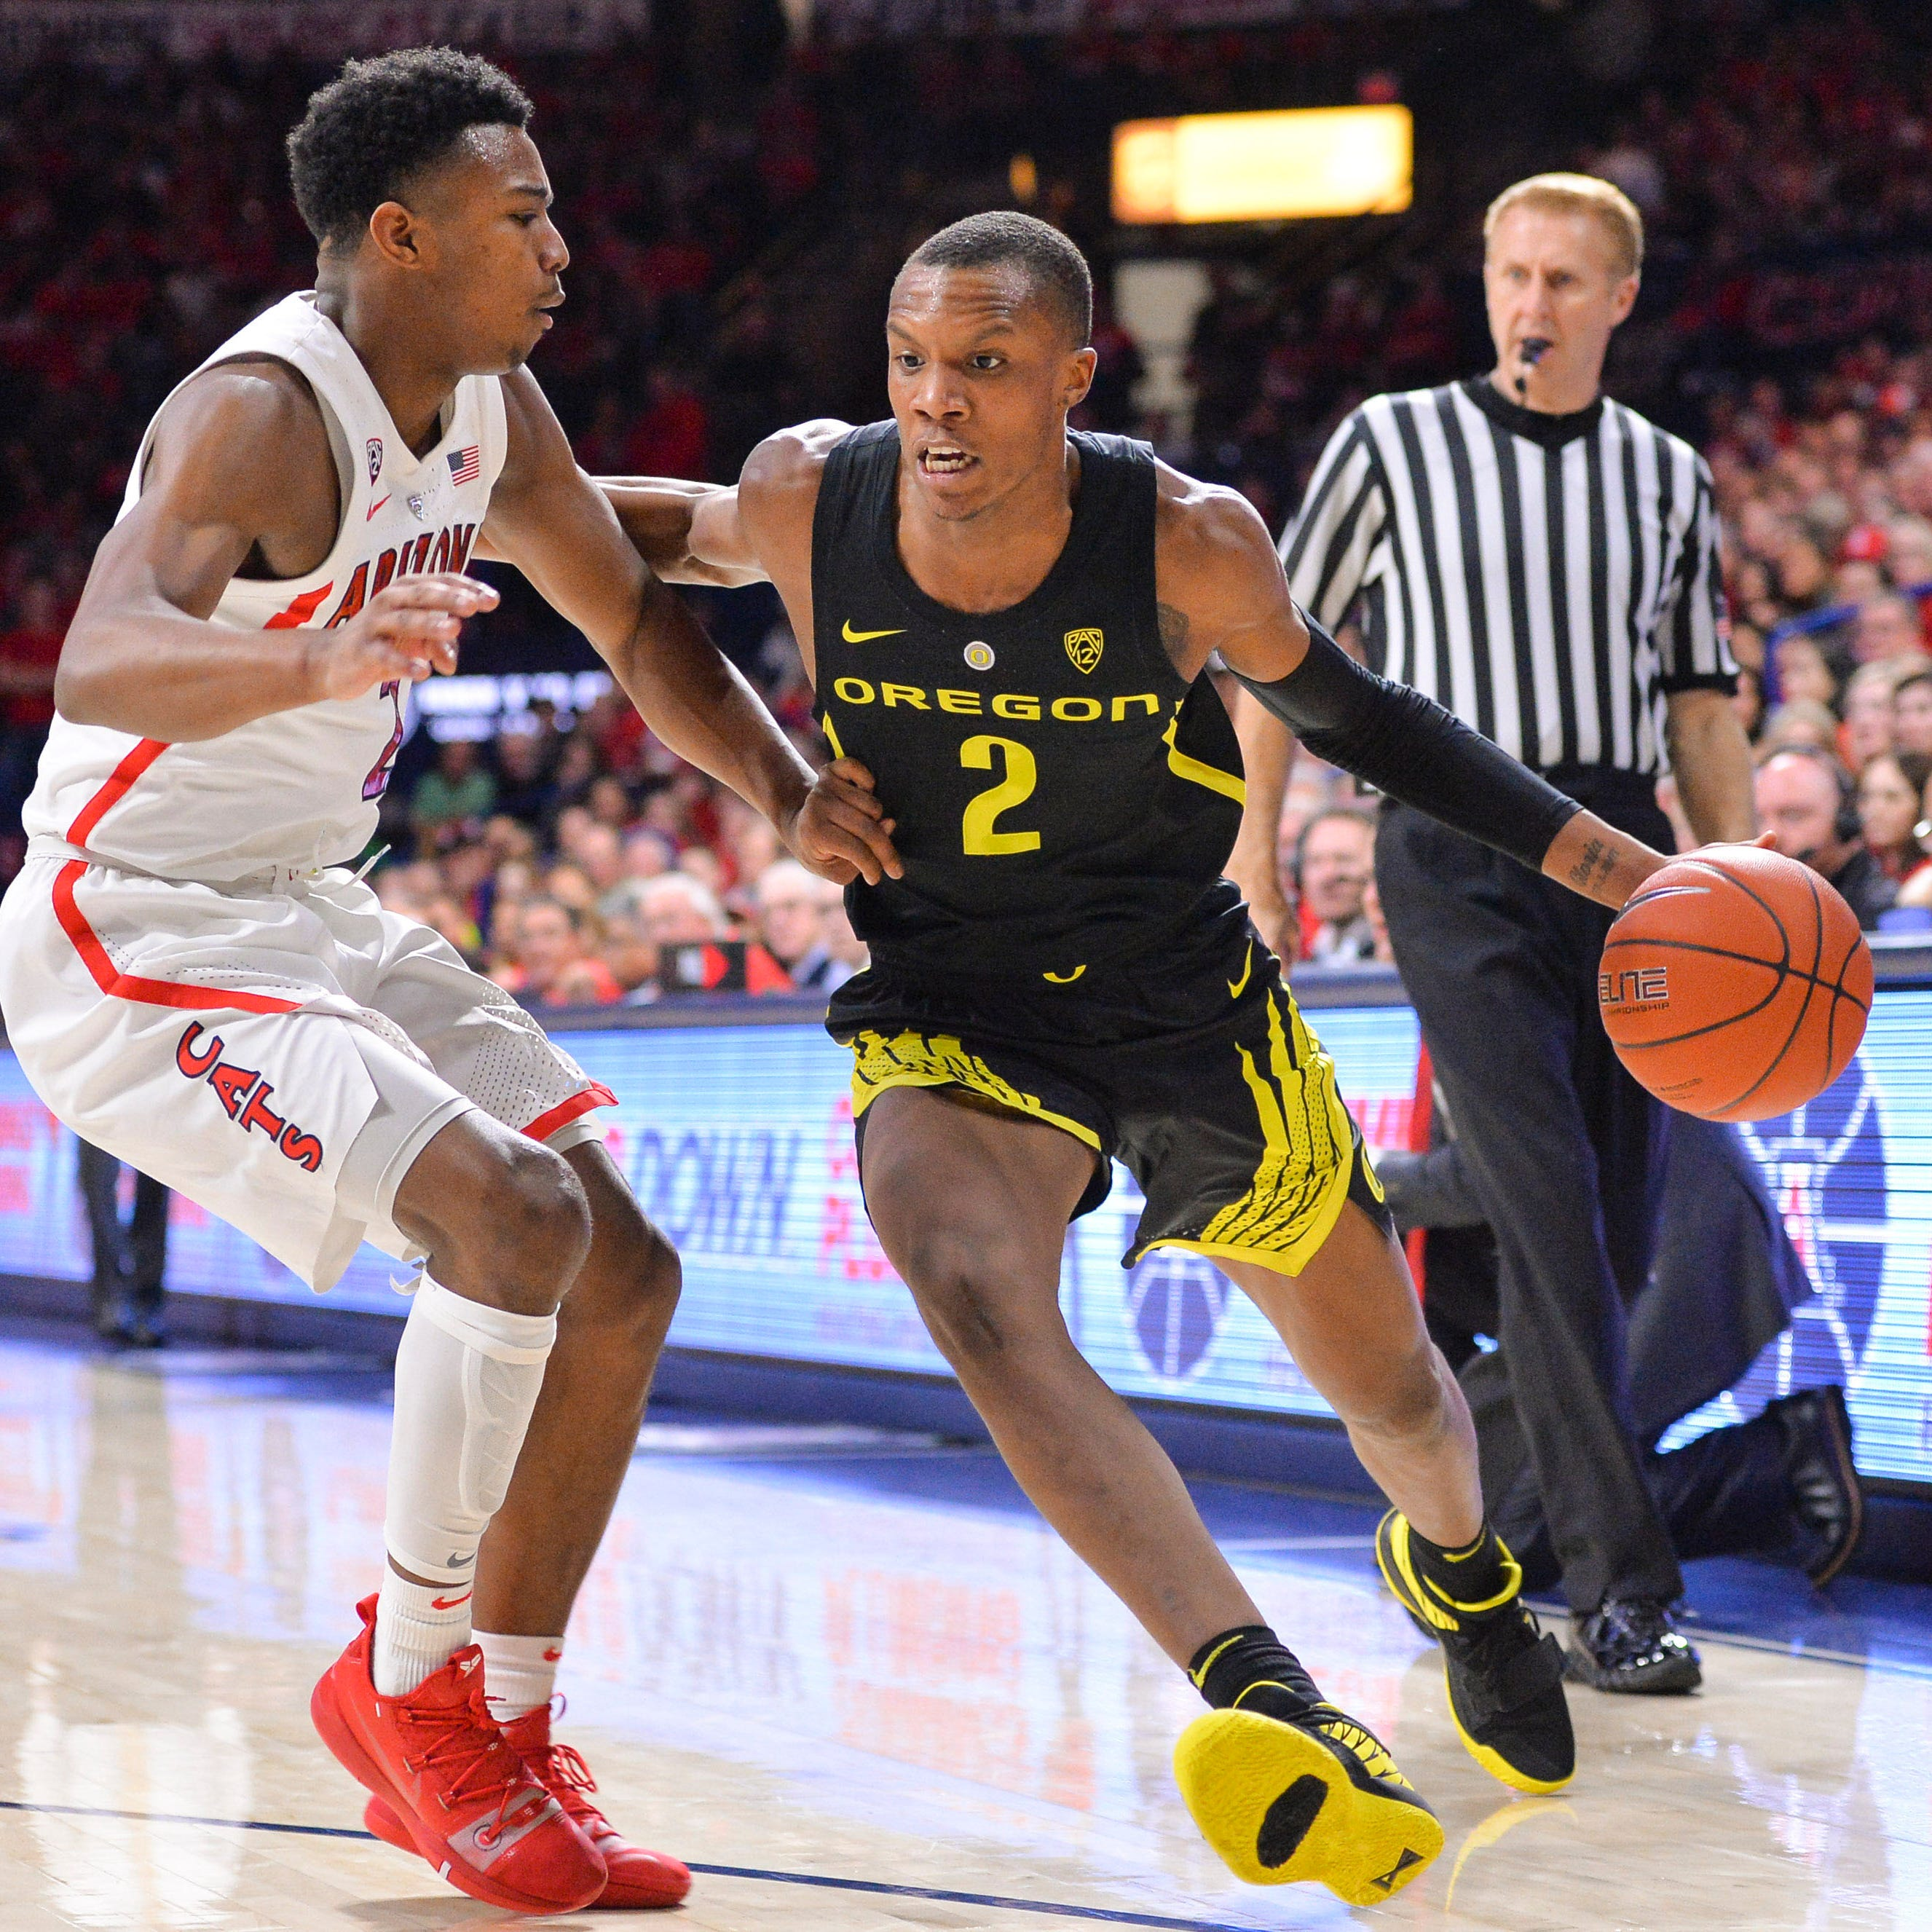 Oregon Ducks hand Arizona Wildcats first Pac-12 loss, 59-54